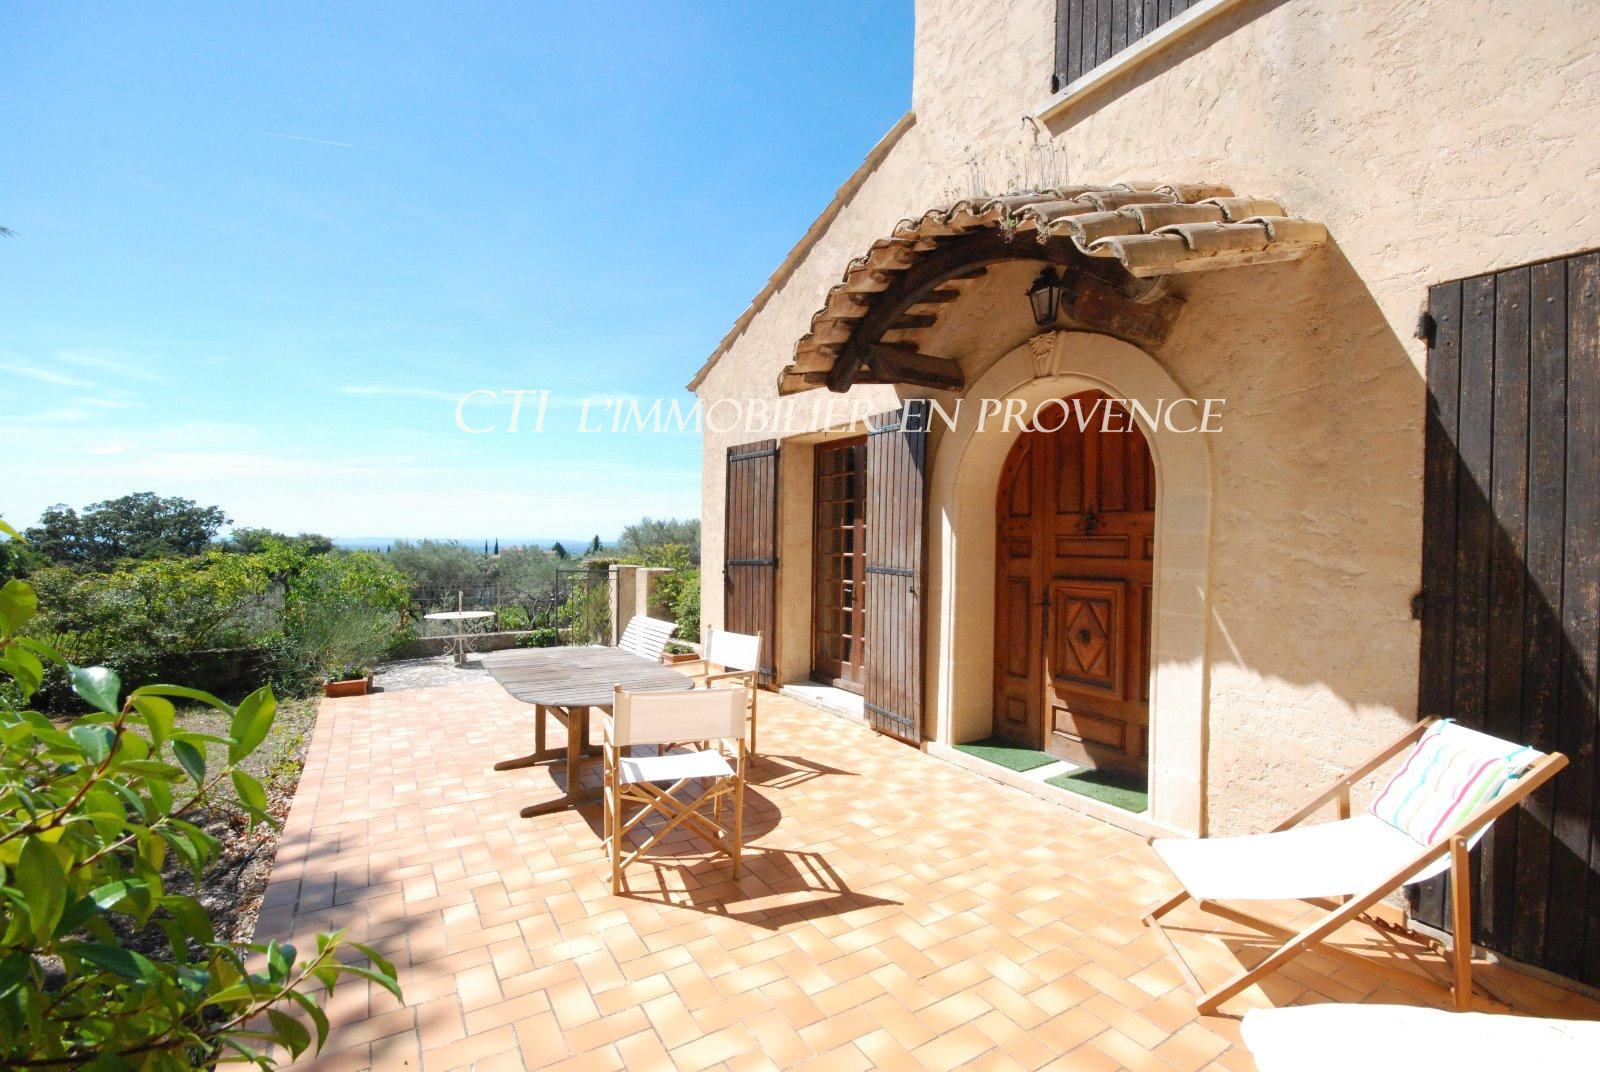 Gorgeous and authentic stone village house with pool and olive grove